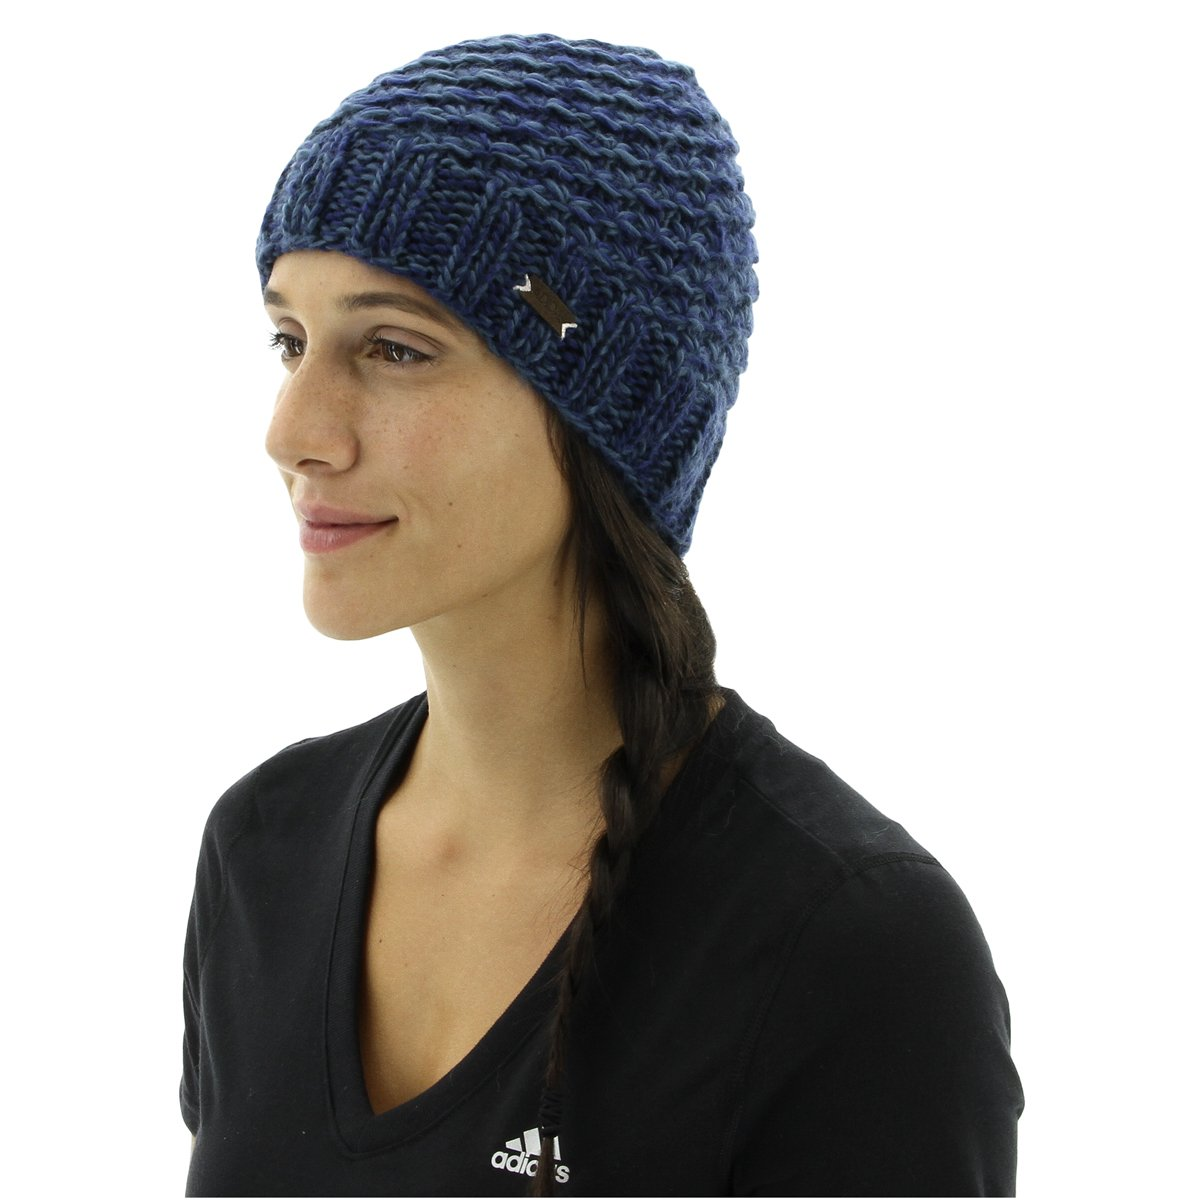 ac6555a3c6672f Amazon.com: adidas Women's Whittier Beanie, Pigment Navy - Dusty Steel  Marl/Super Pink, One Size: Sports & Outdoors